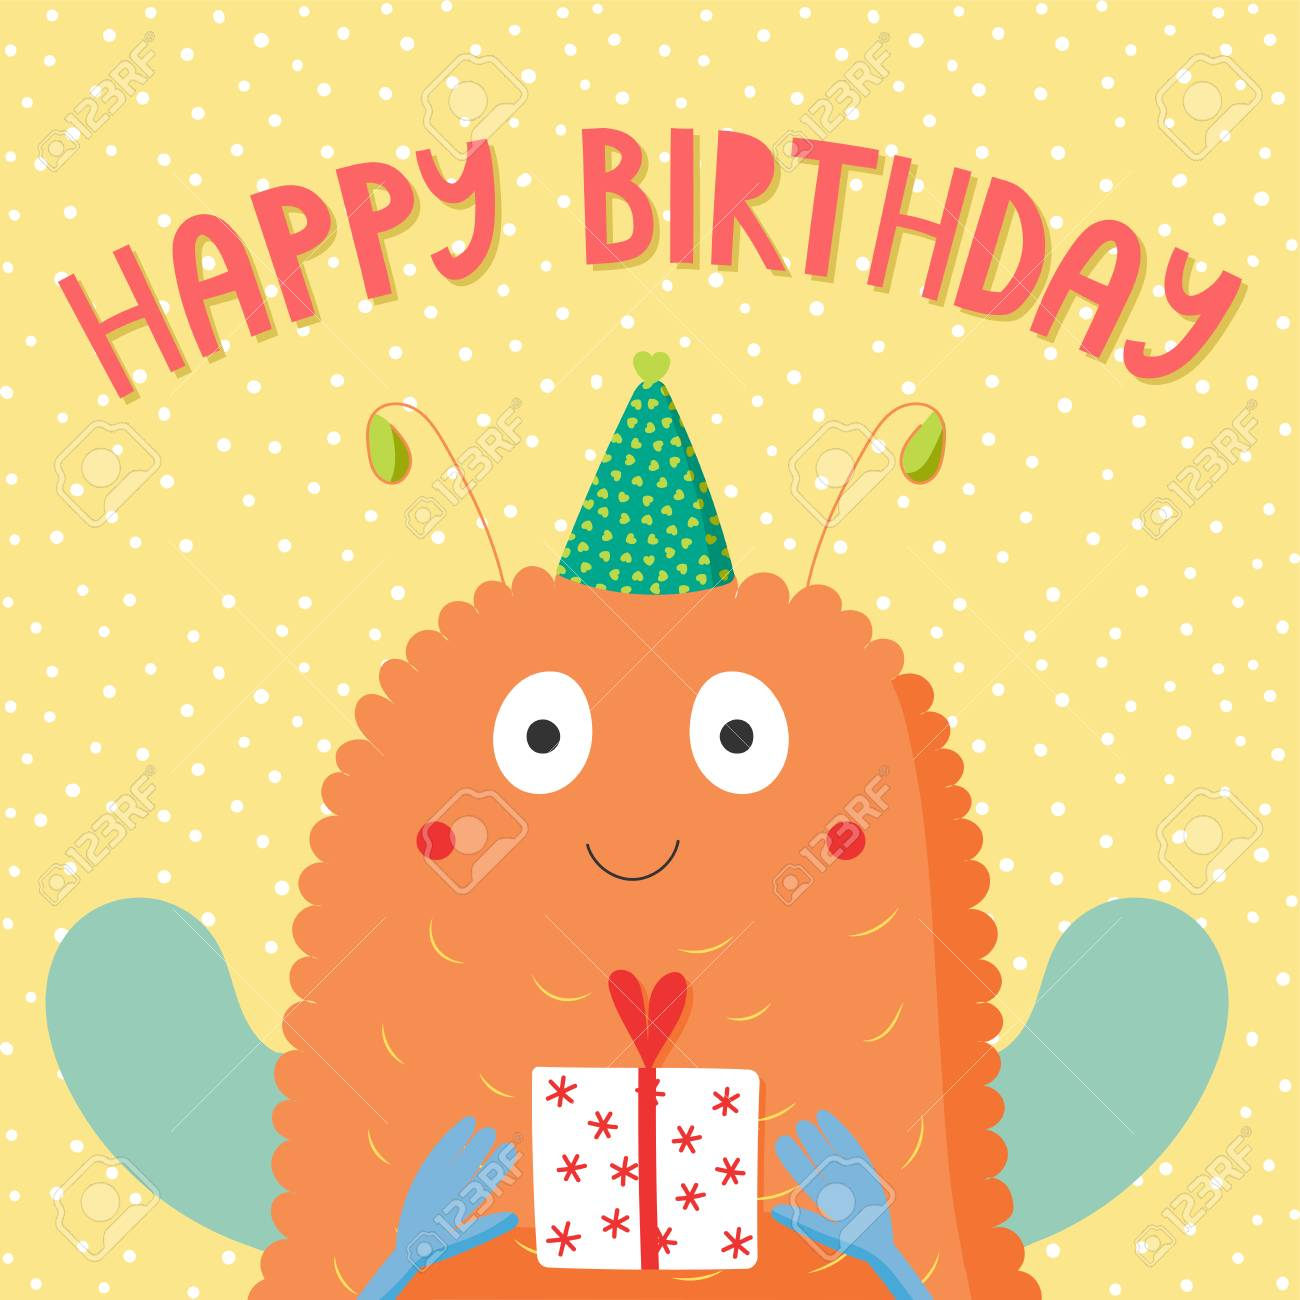 Hand Drawn Birthday Card With Cute Funny Monster In A Party Hat Holding Present